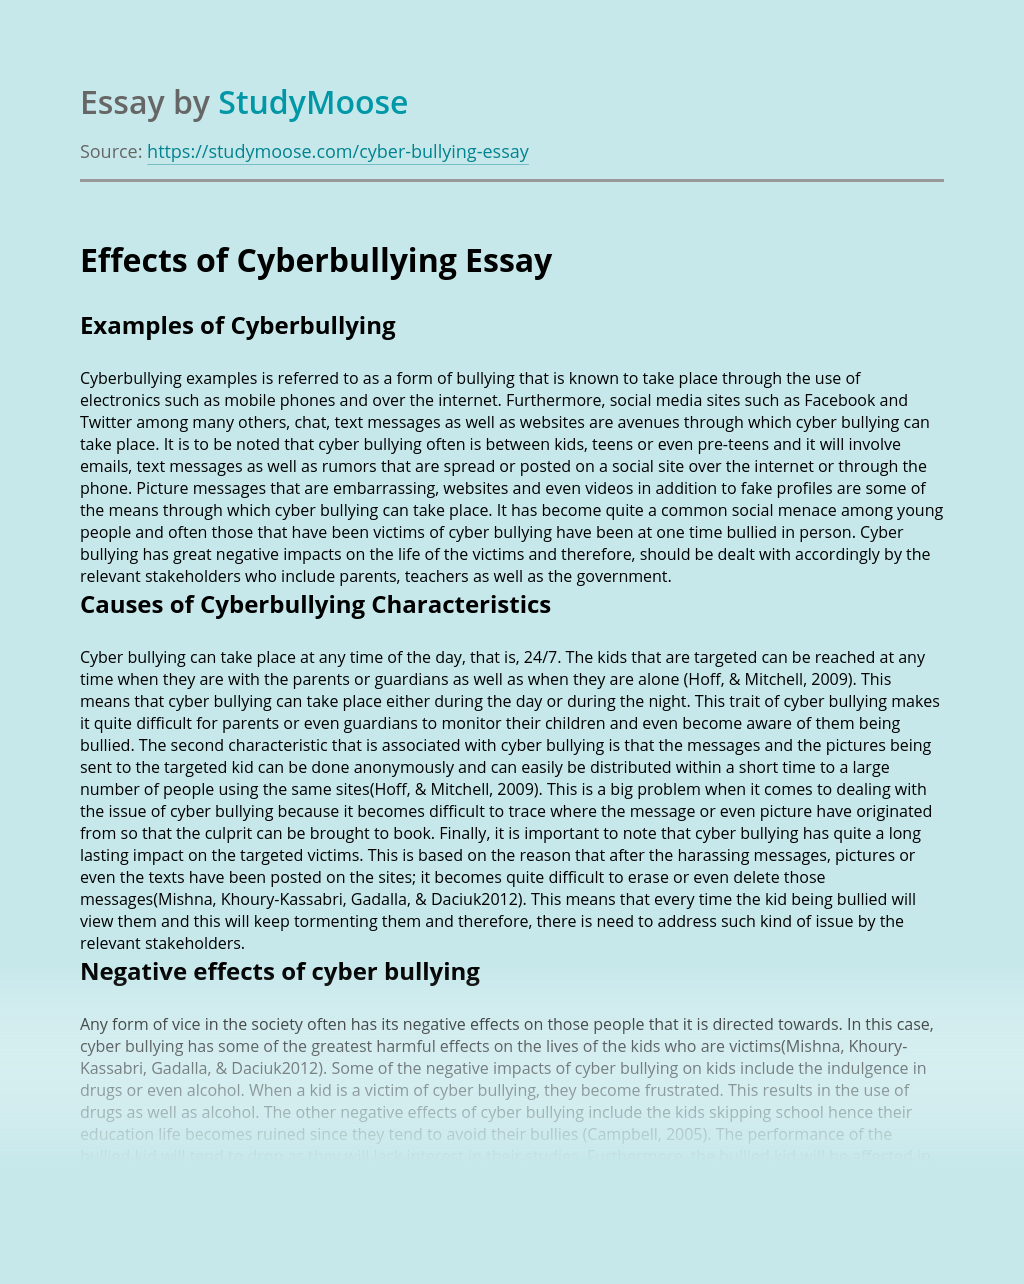 Effects of Cyberbullying